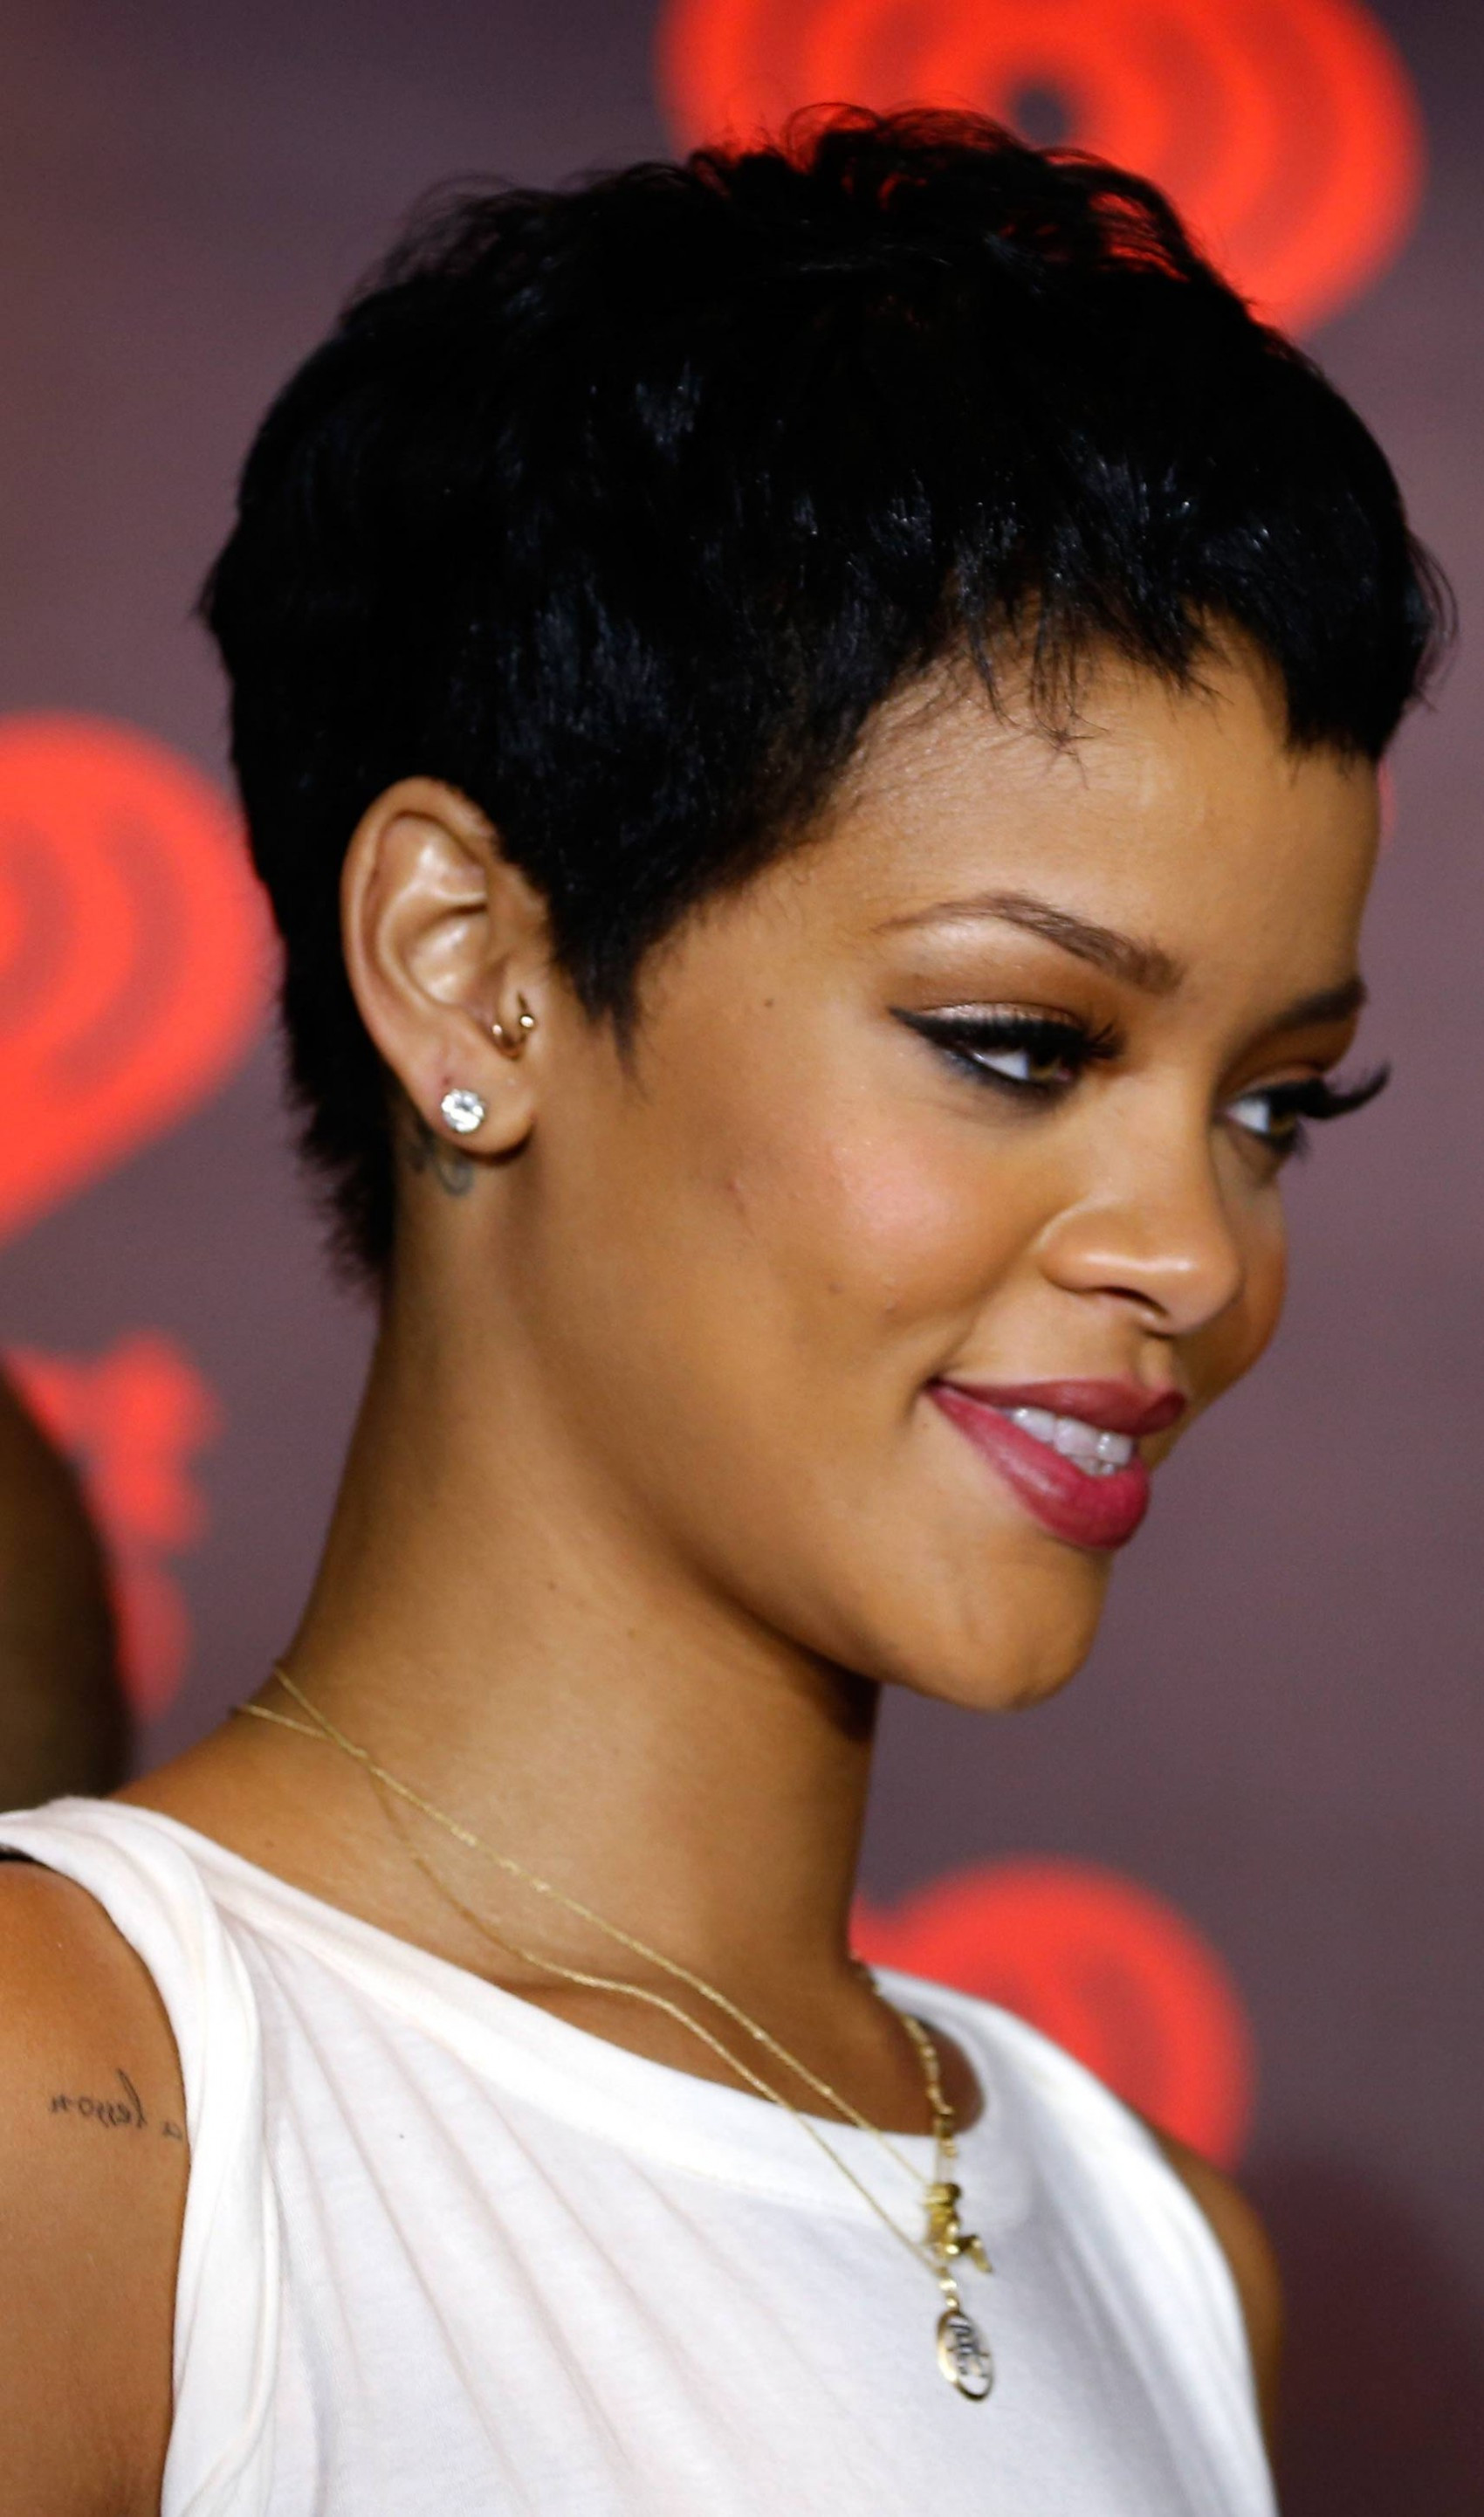 Best ideas about Short Black Girl Haircuts . Save or Pin Best Short Hairstyles for Girls Now.